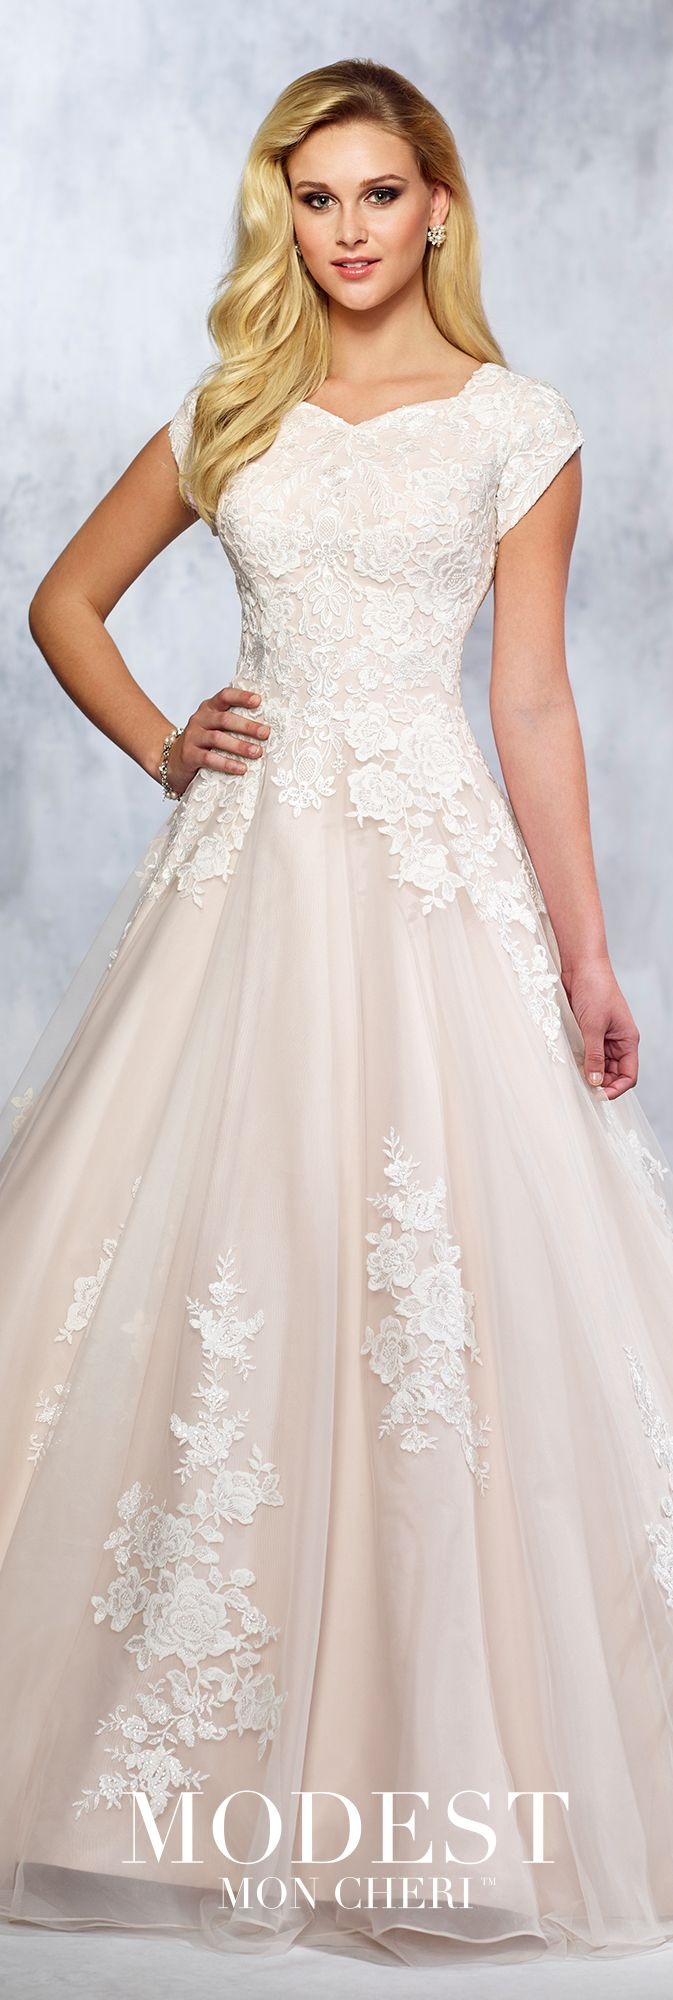 Modest wedding dresses fall collection style no tr